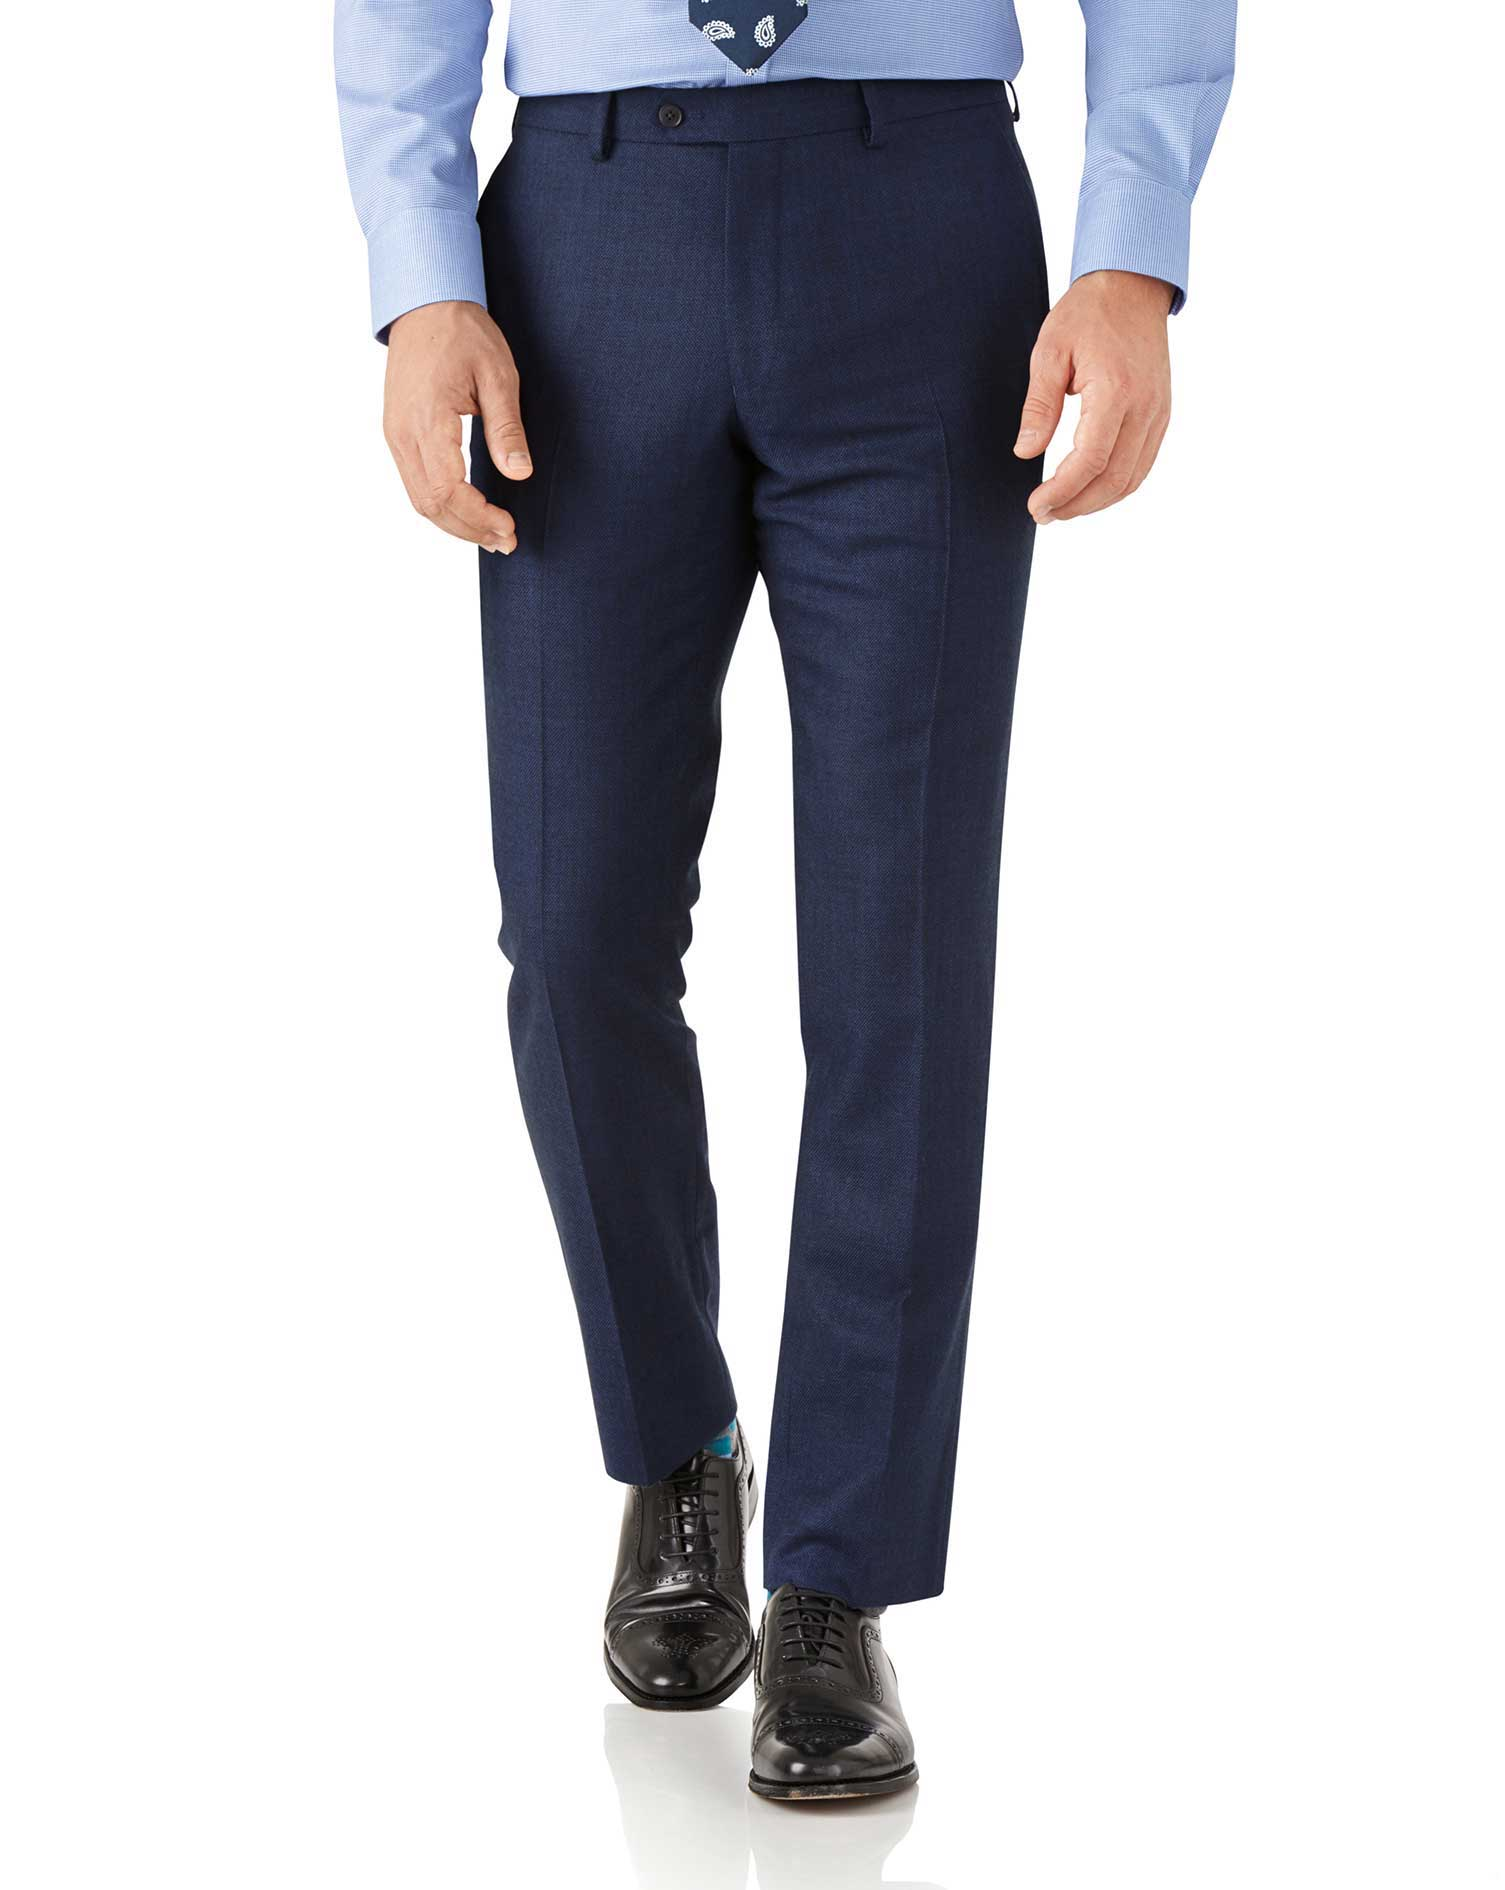 Royal Blue Slim Fit Flannel Business Suit Trousers Size W32 L34 by Charles Tyrwhitt